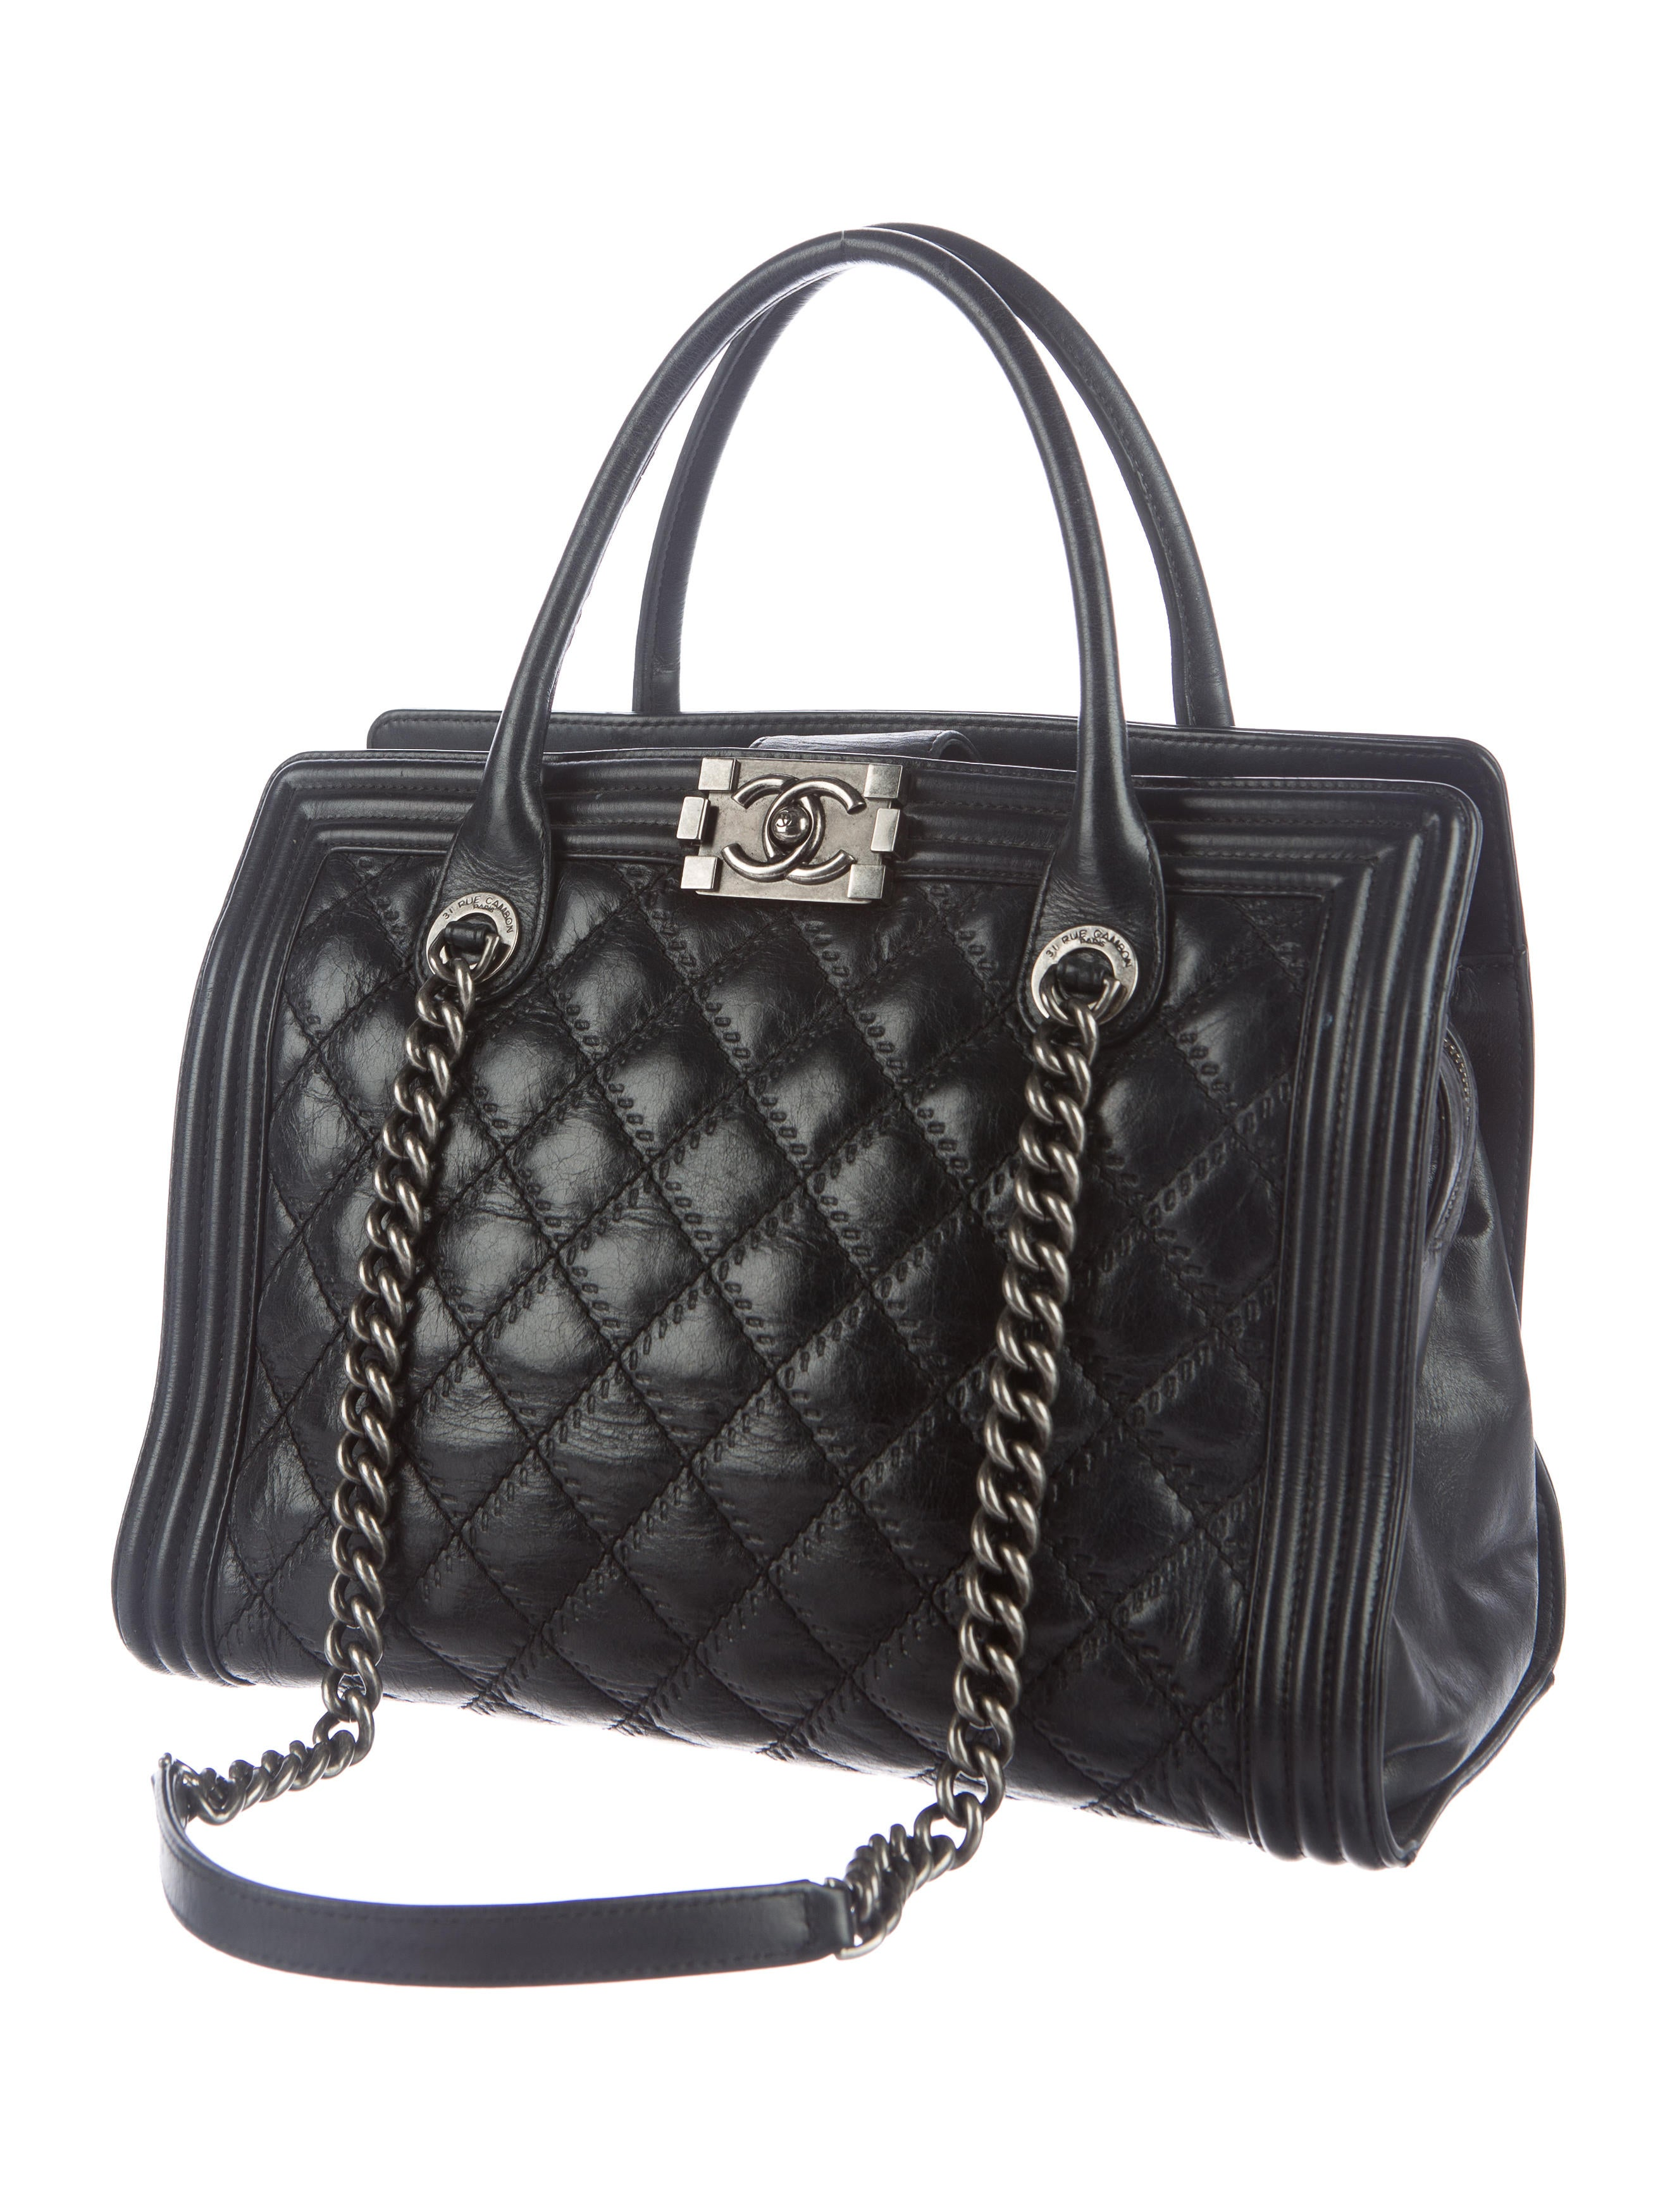 8fbb9138da48 Chanel Boy Tote Bag Price | Stanford Center for Opportunity Policy ...